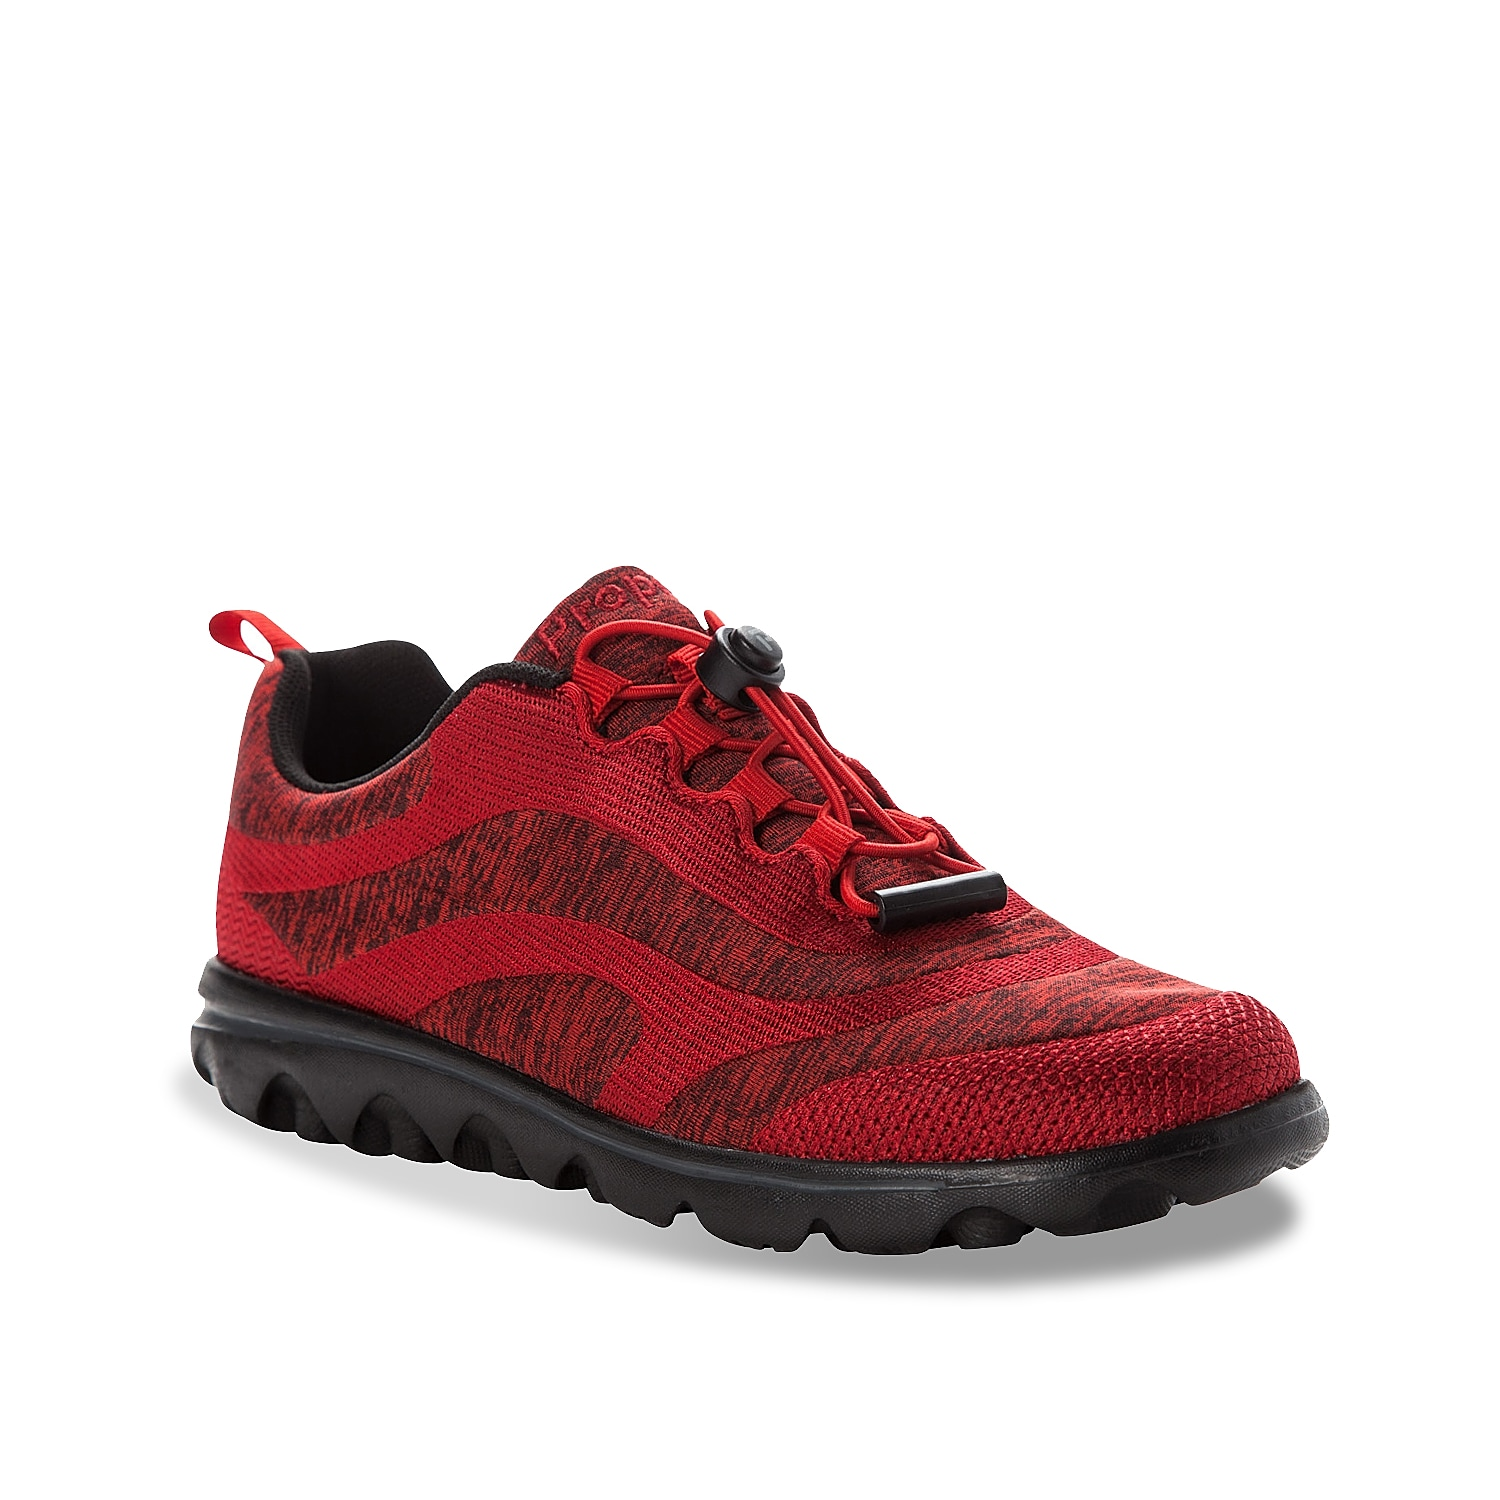 You\\\'ll fall in love with the look and feel of the Travelactive Aero shoe from Propet. Built with an airy mesh upper, this lace-up shoe has a comfortable high-density open foam insole and traction-improving TravelTek¿ EVA outsole.